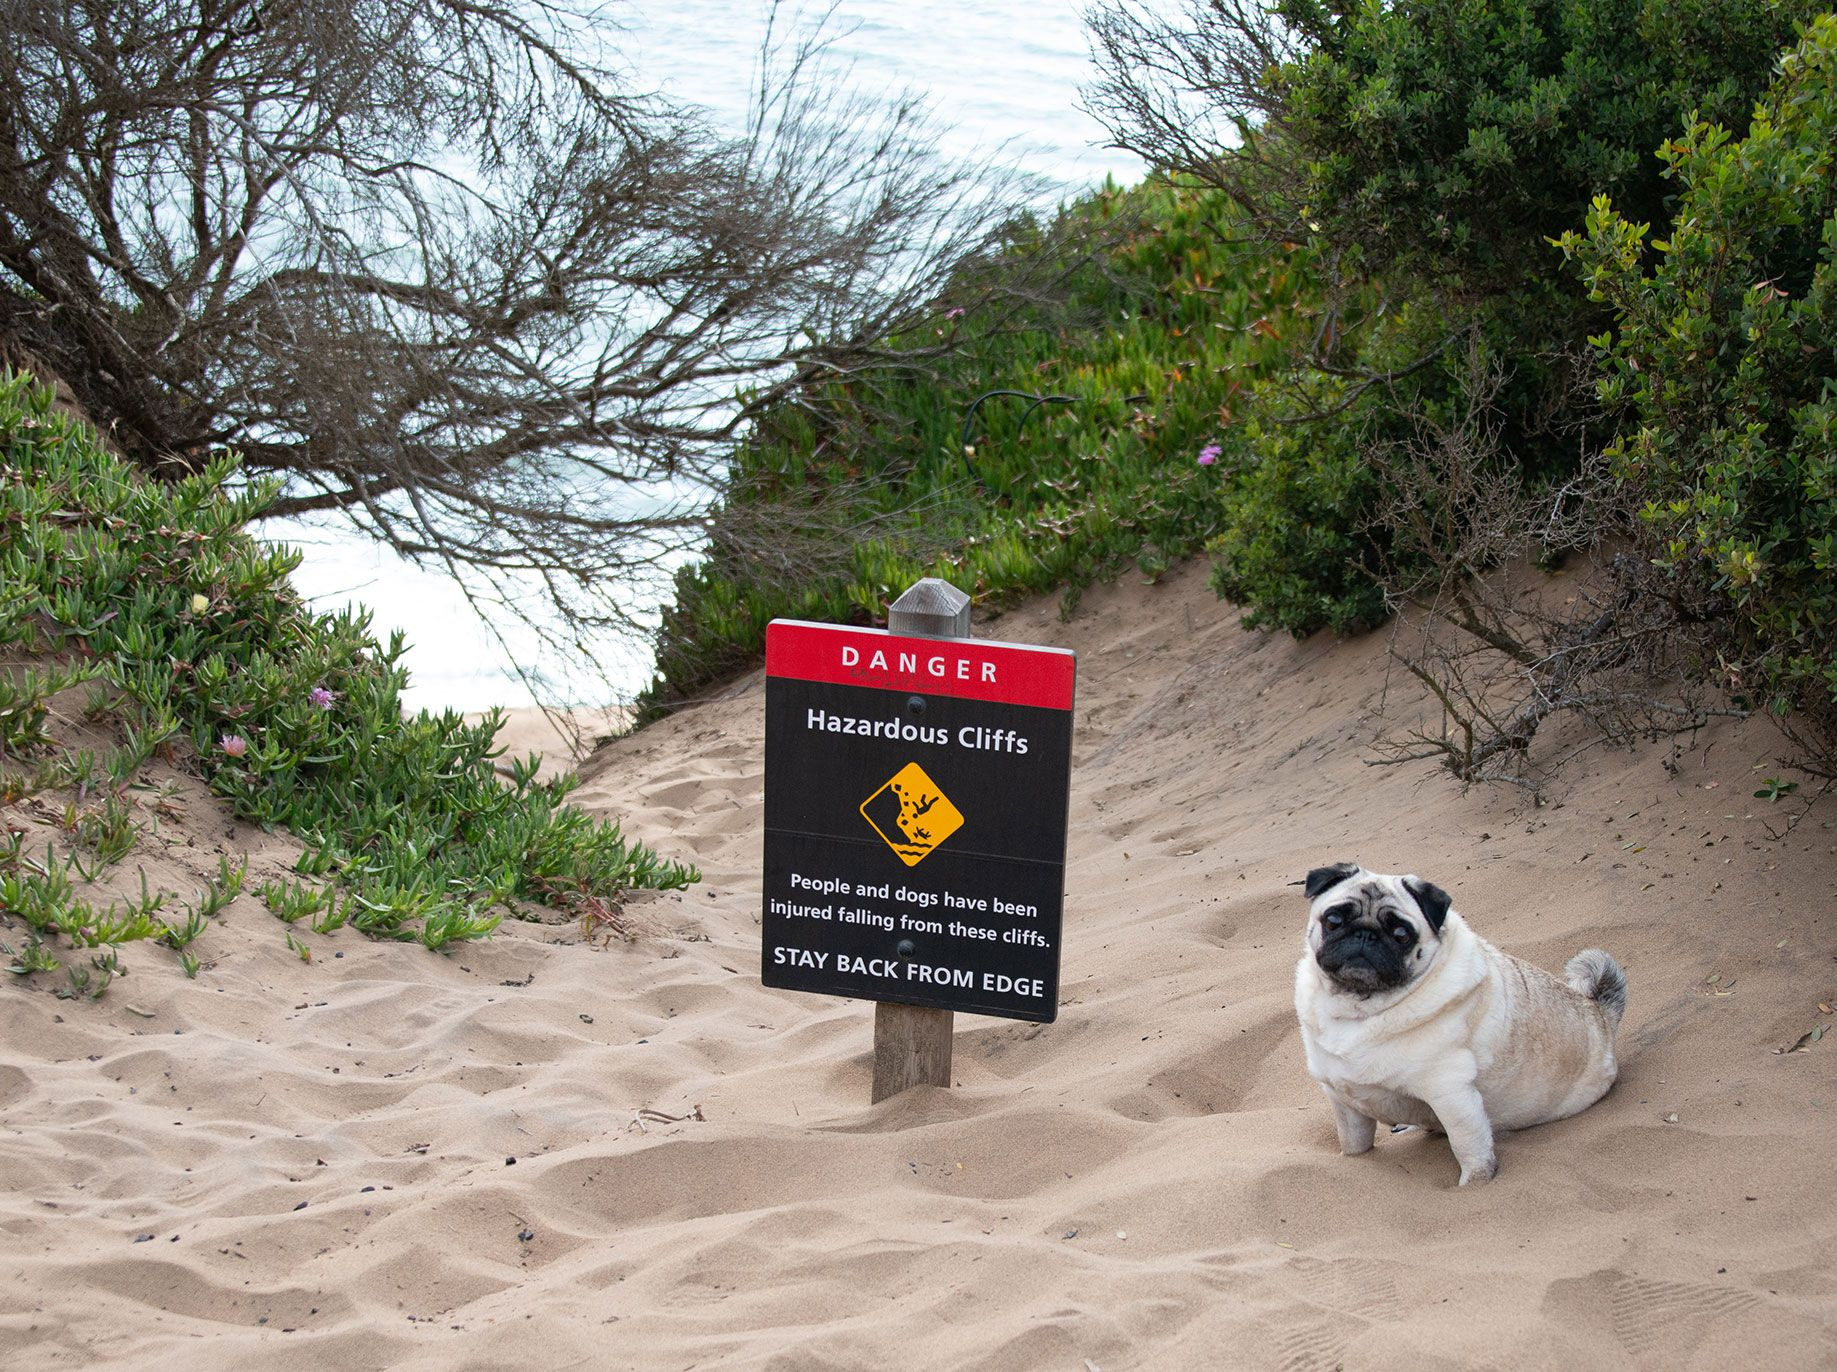 An off-leash dog is perched next to a sign warning of the cliff-side danger.